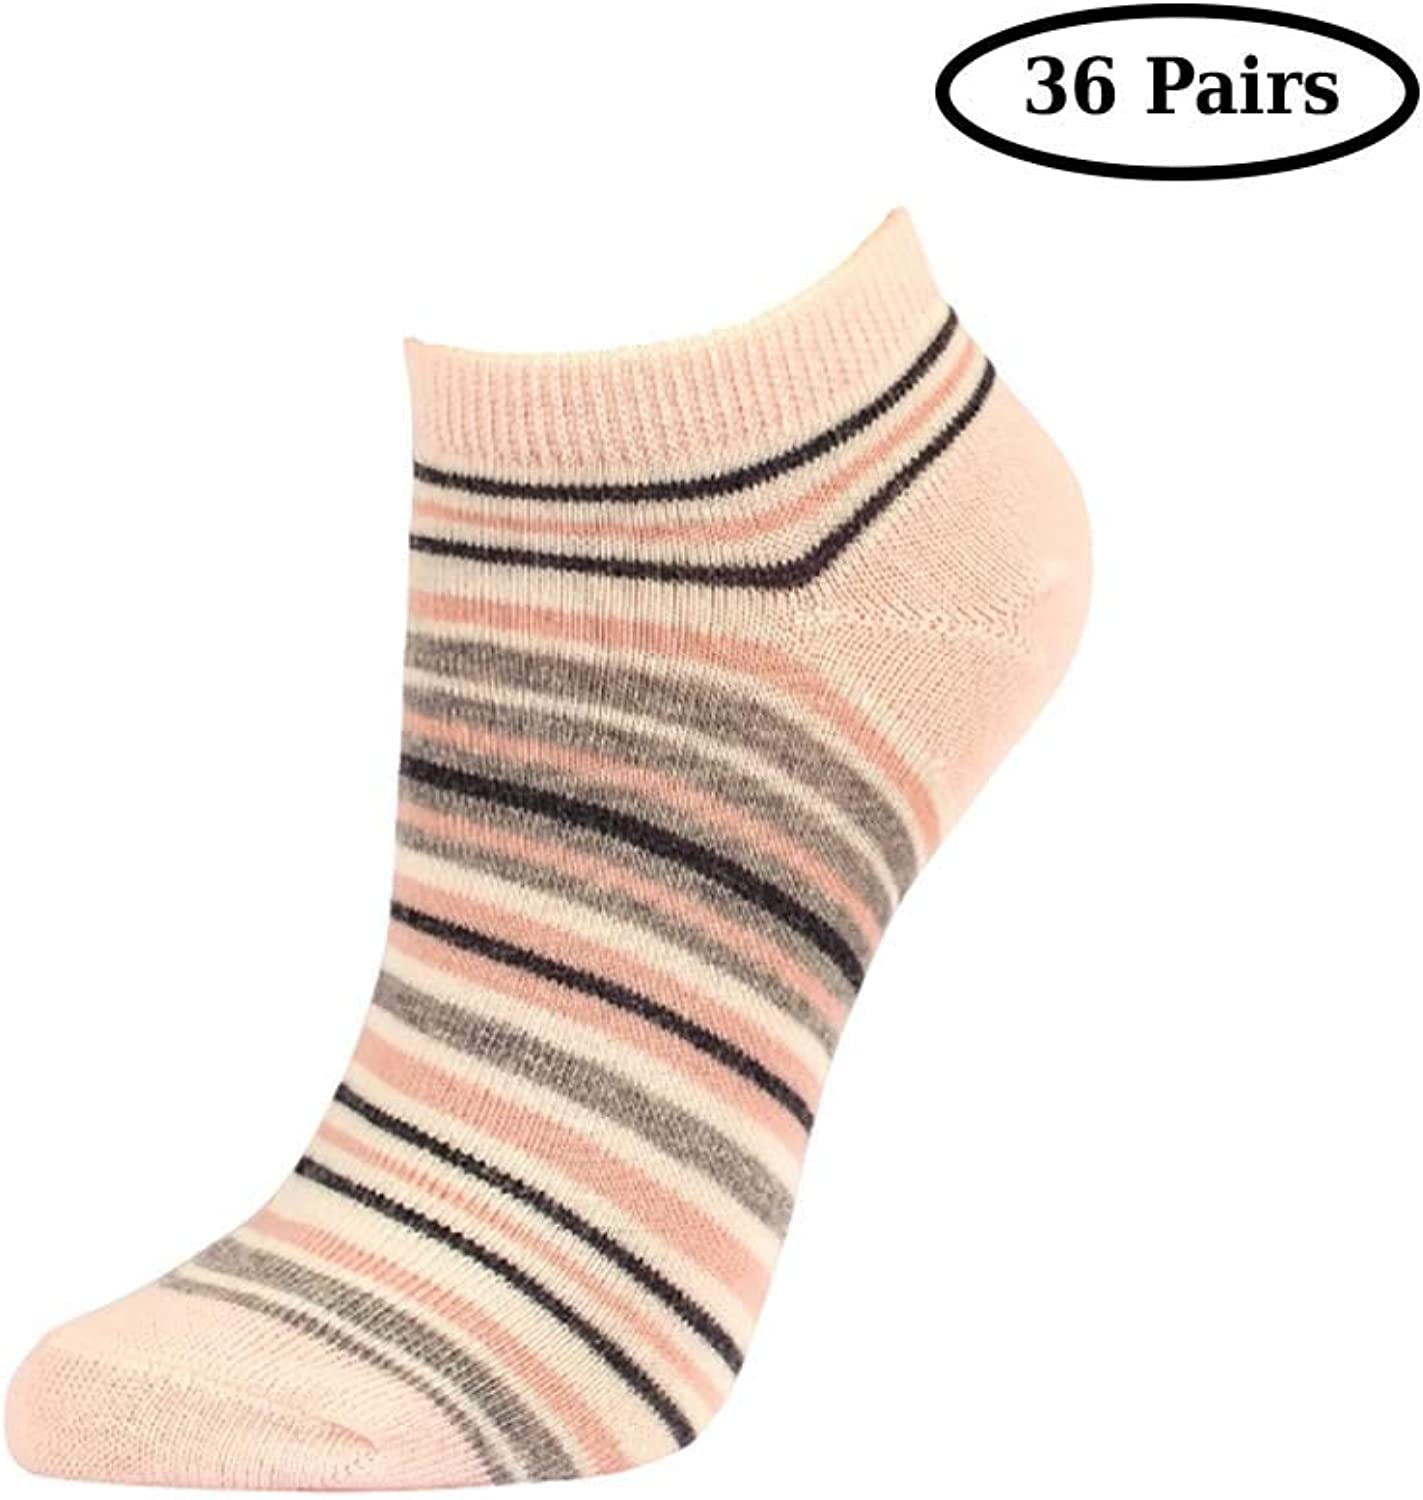 Mechaly Soft Cotton Blend colorful Stripe No Show Socks Everyday Wearshoes Size 69 Sock Size 91136Pairs (Lt.Pink)